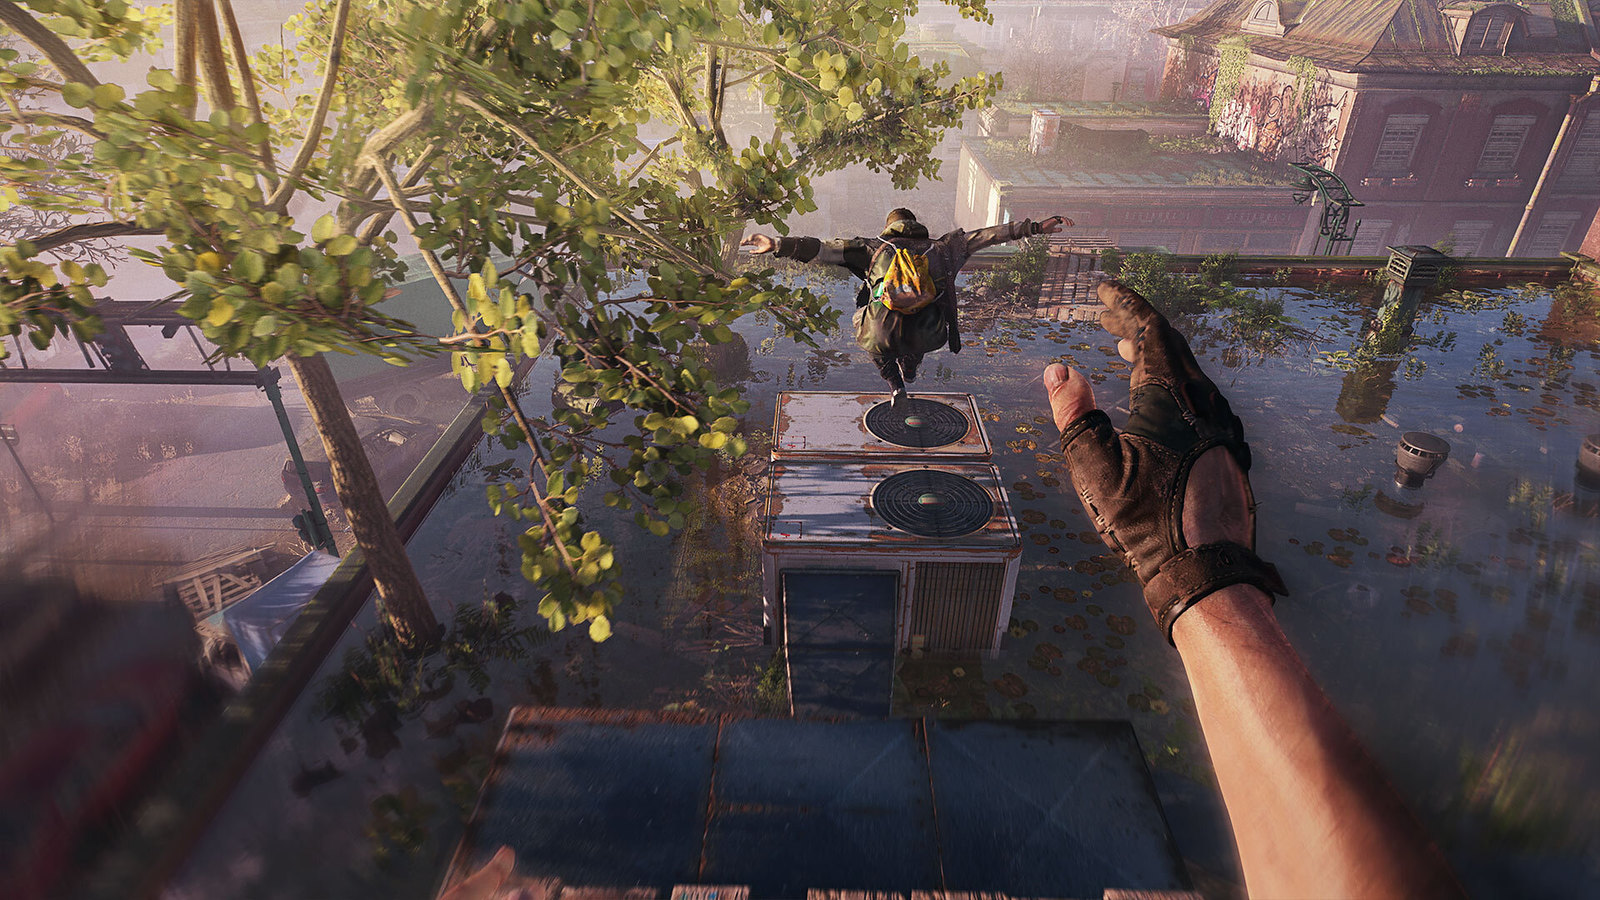 Playstation News: Explore the secrets of The City in Dying Light 2 Stay Human